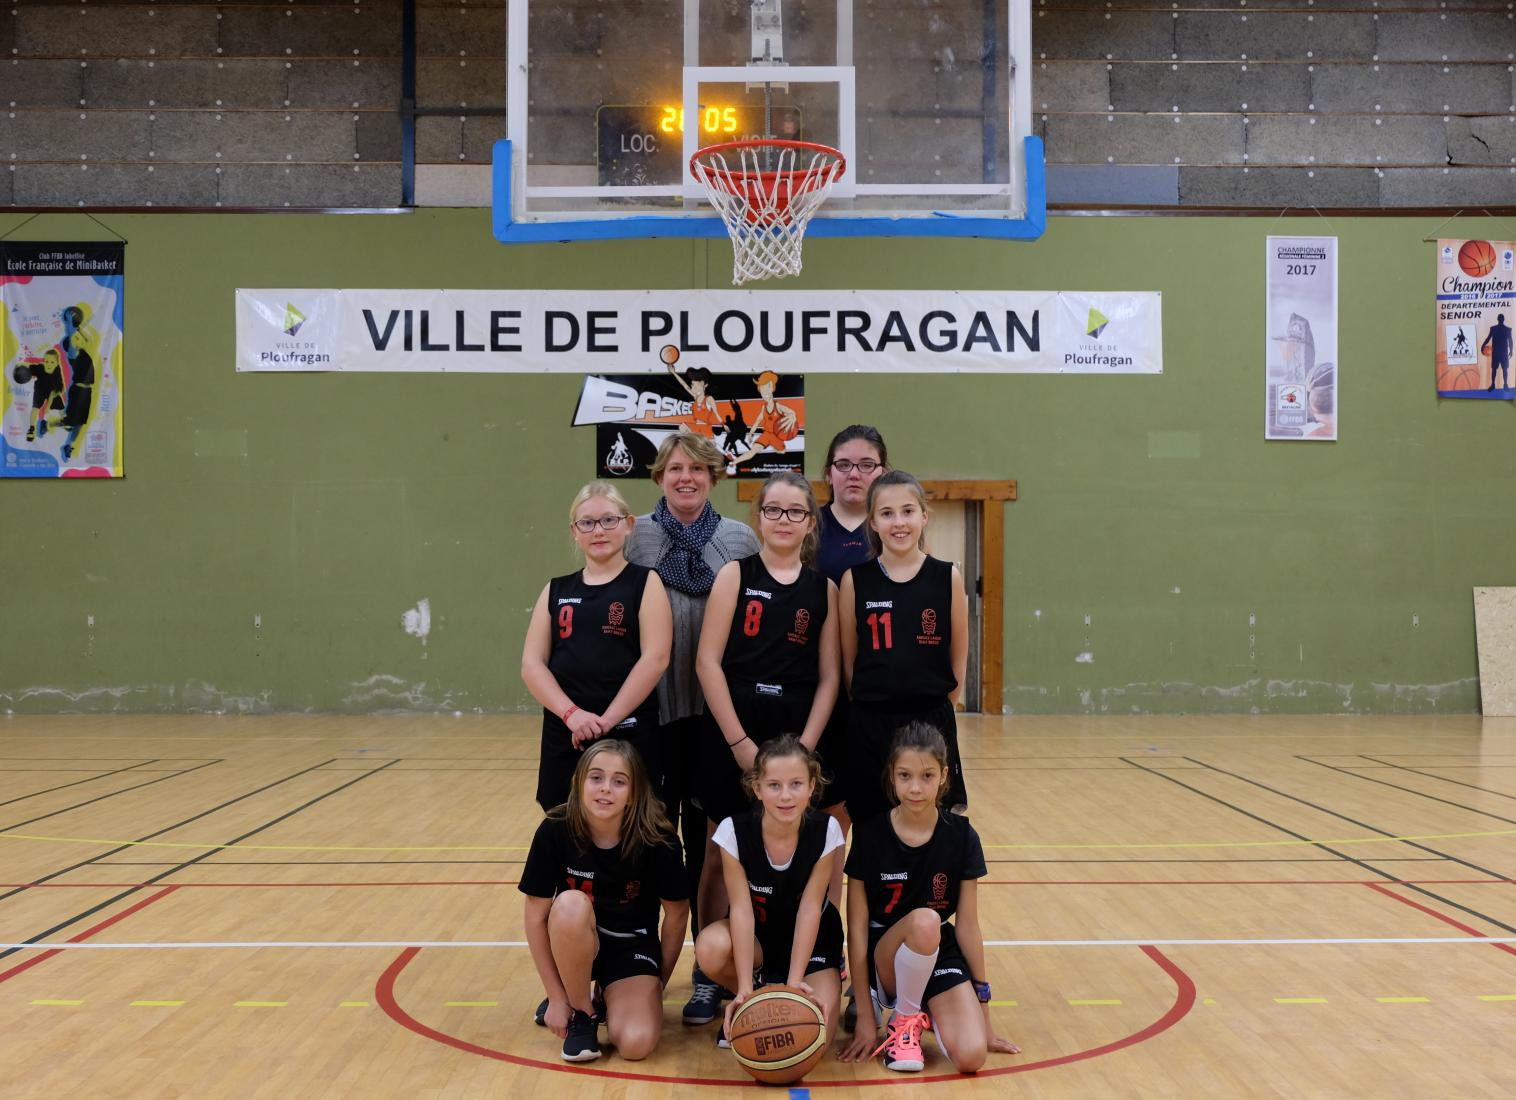 U13 FILLES-2 CTC - DEVELOPPEMENT - AL PLOUFRAGAN BASKET-BALL